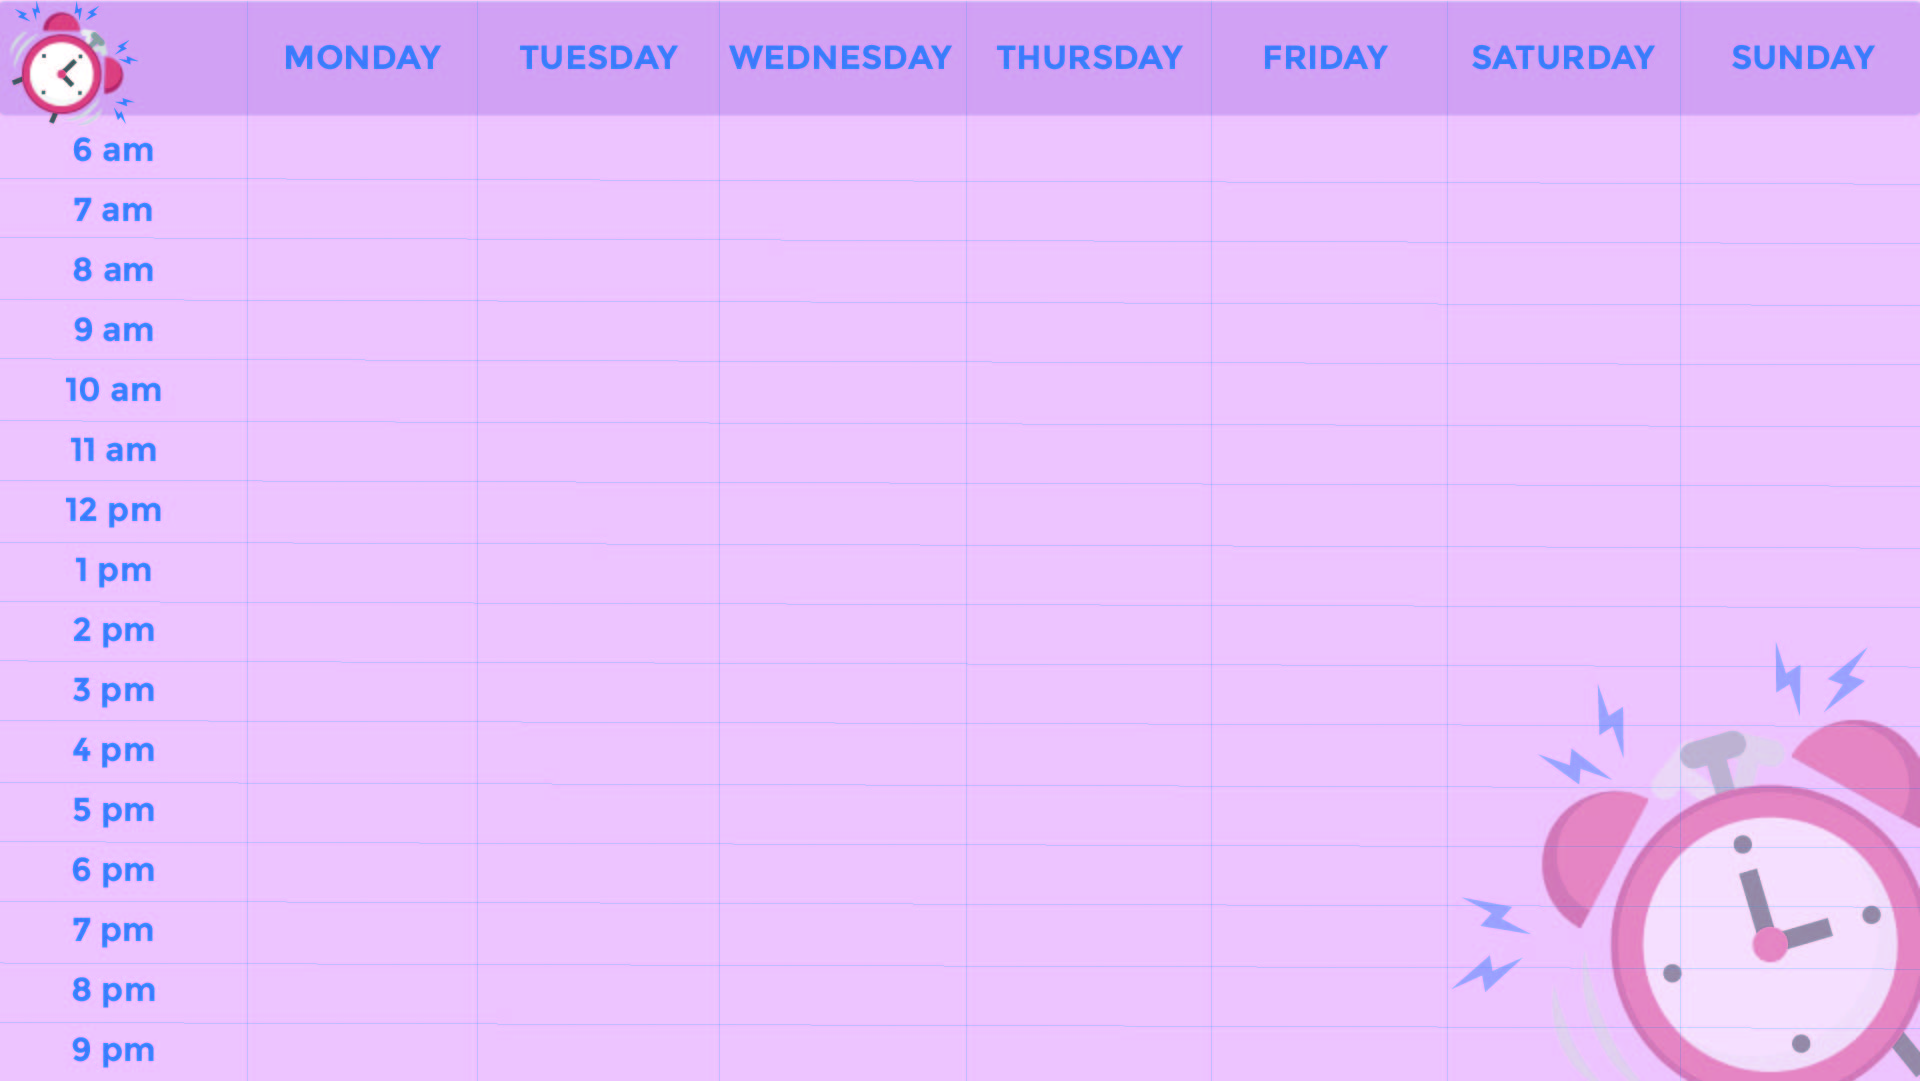 Blank Weekly Calendar with Time Slots